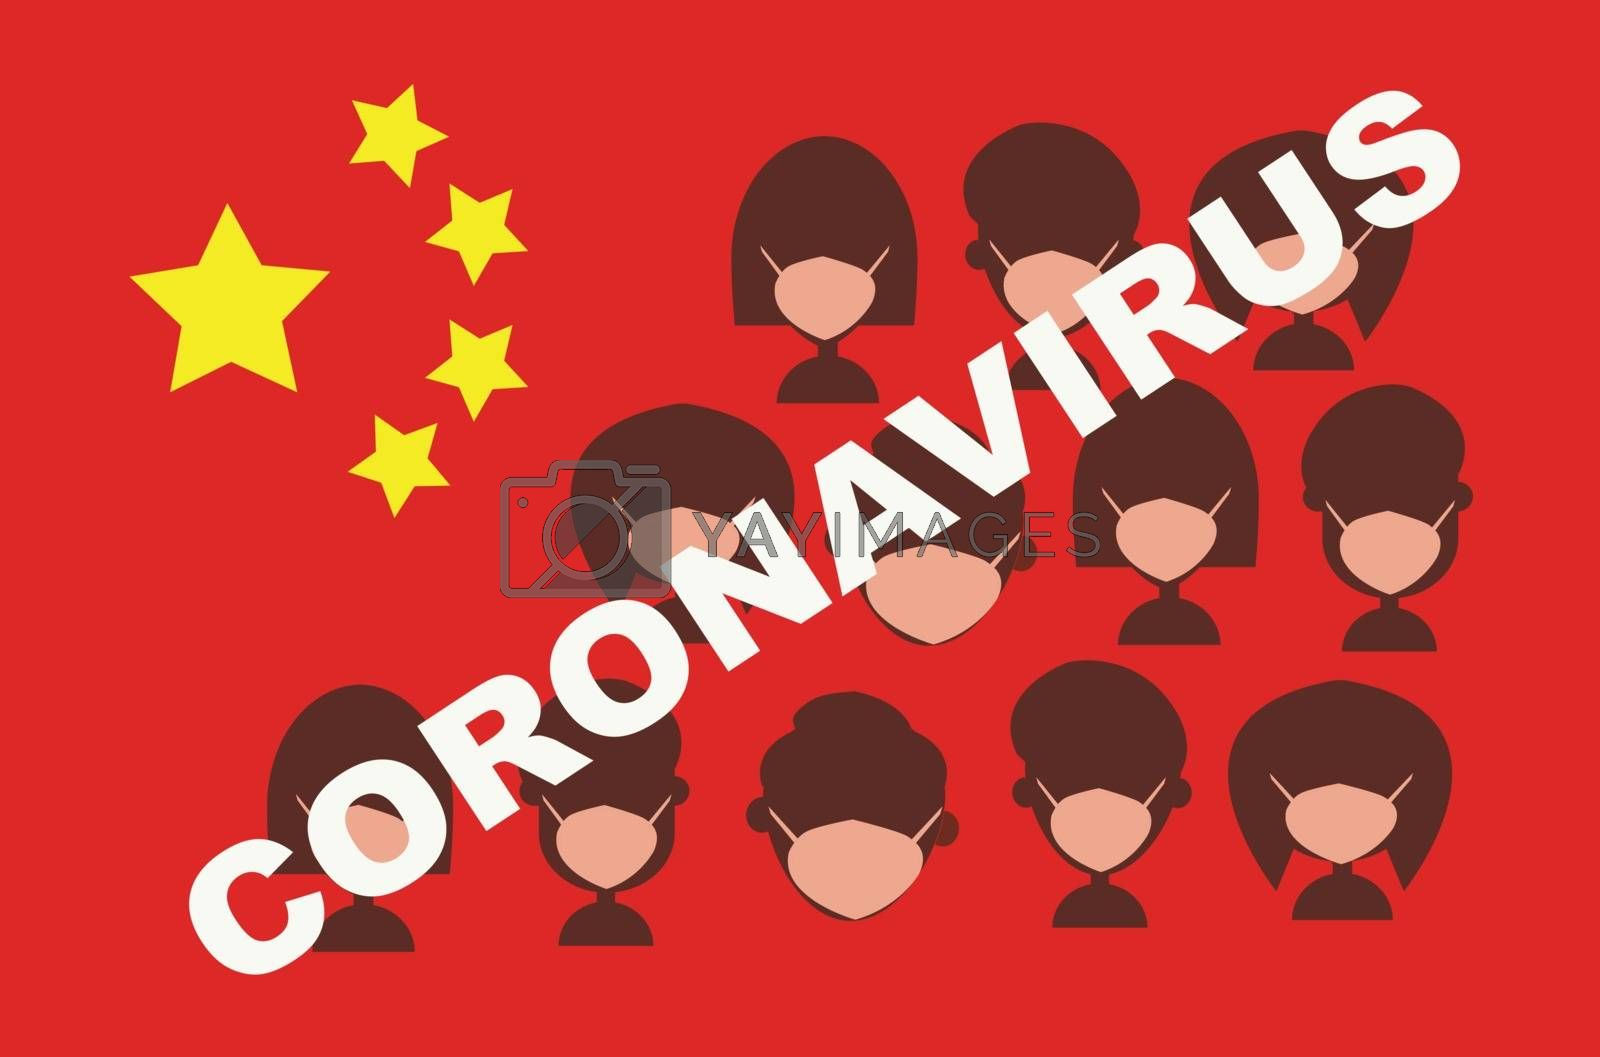 Coronavirus in China. Novel coronavirus (2019-nCoV). Concept of coronavirus quarantine. Silhouette of Group people wearing medical masks flag of China background.